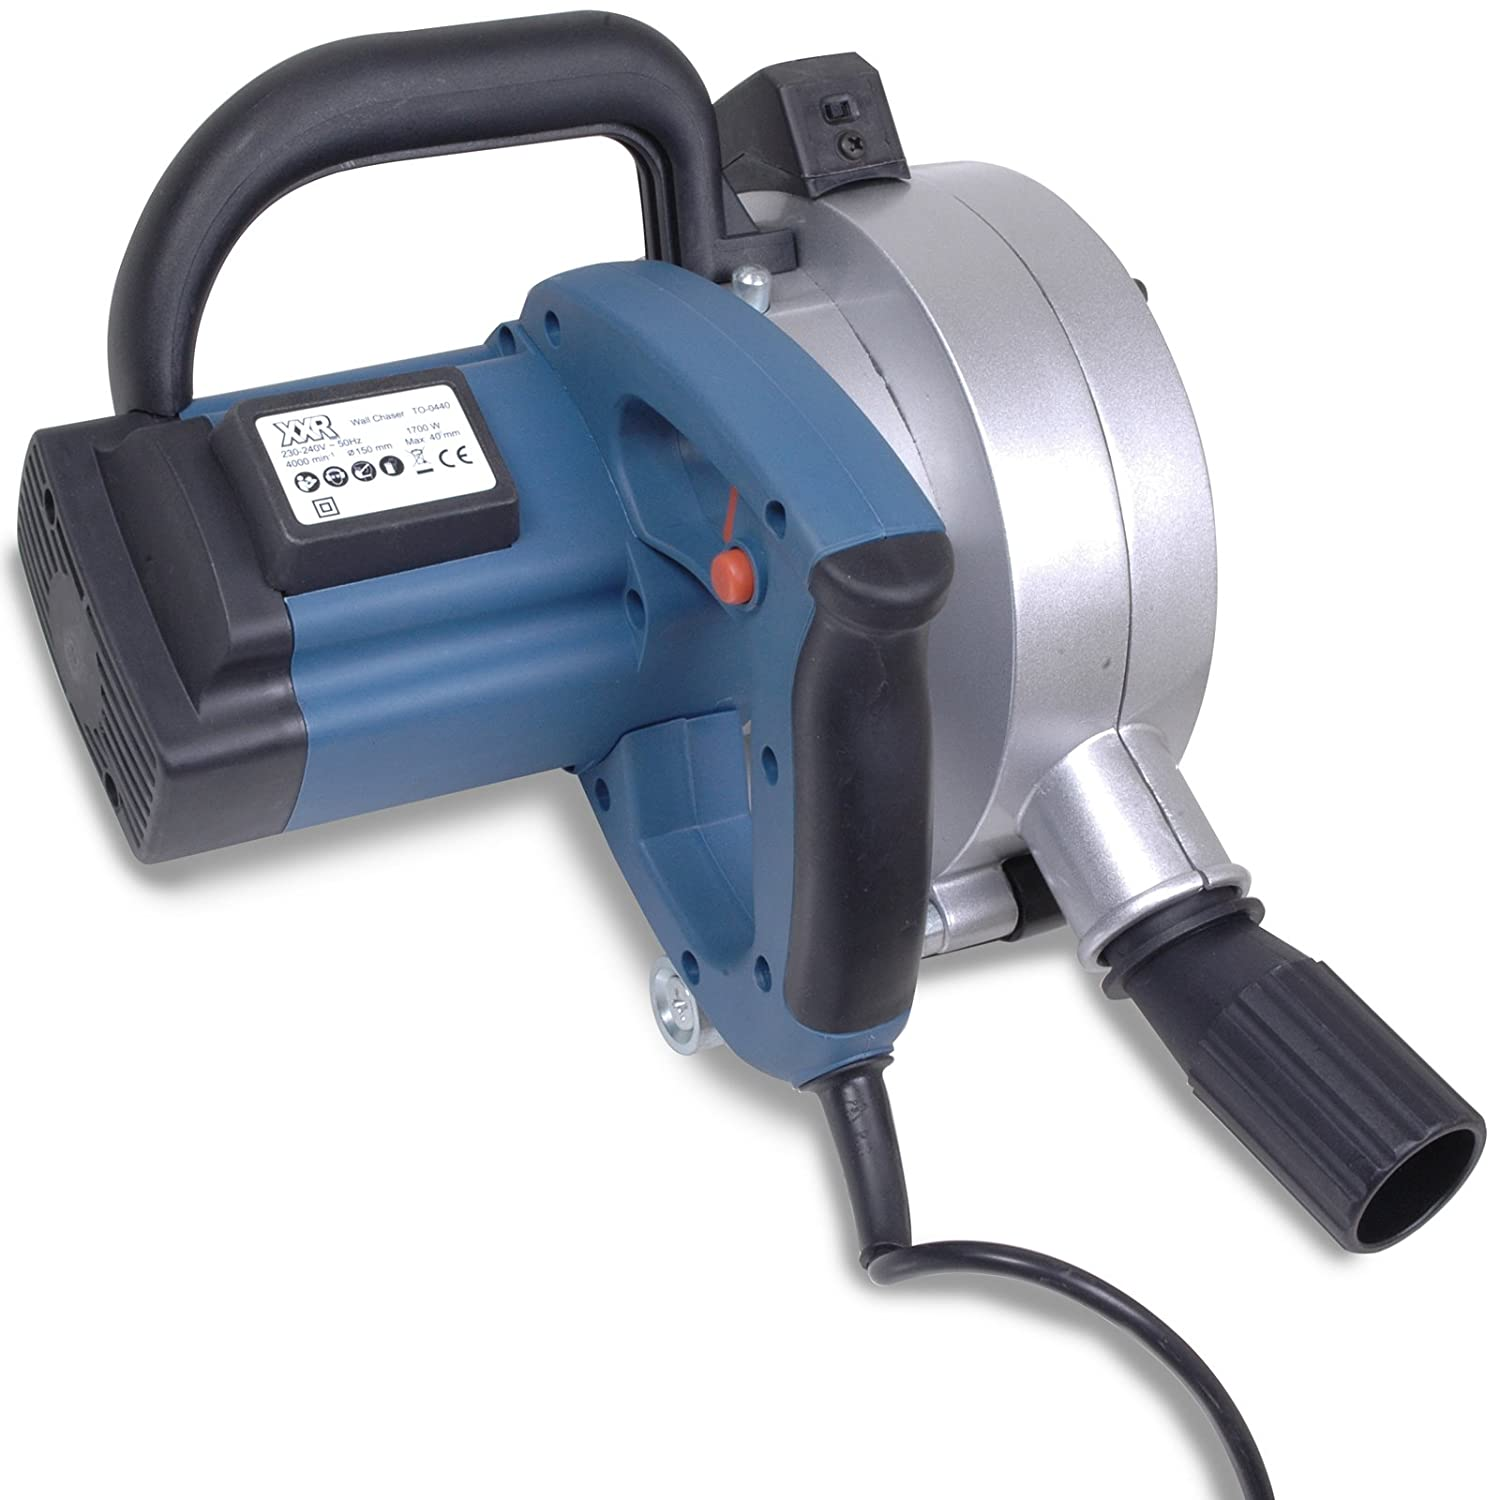 1700w Electric Professional Wall Chaser Slotter Saw Cable Chasing ...